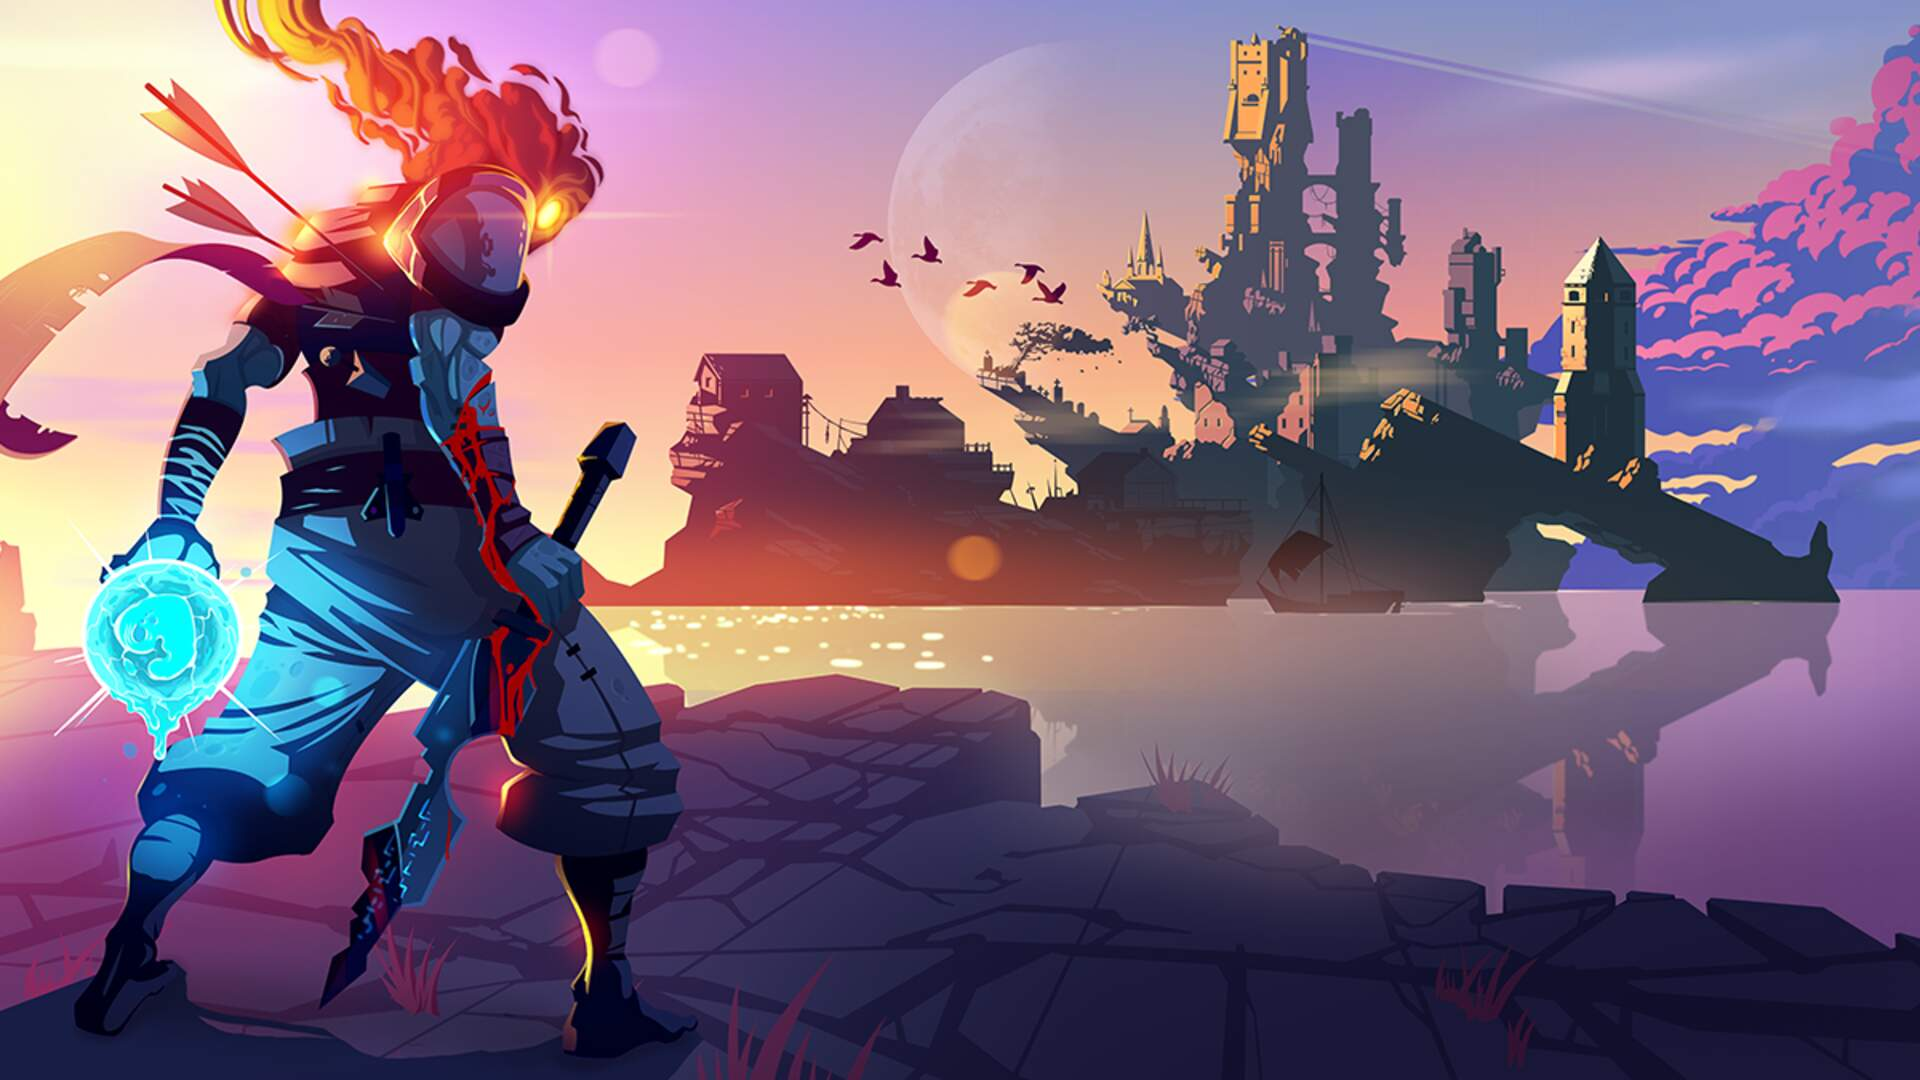 Dead Cells Has Sold More Than One Million Units, With Switch the Top Console